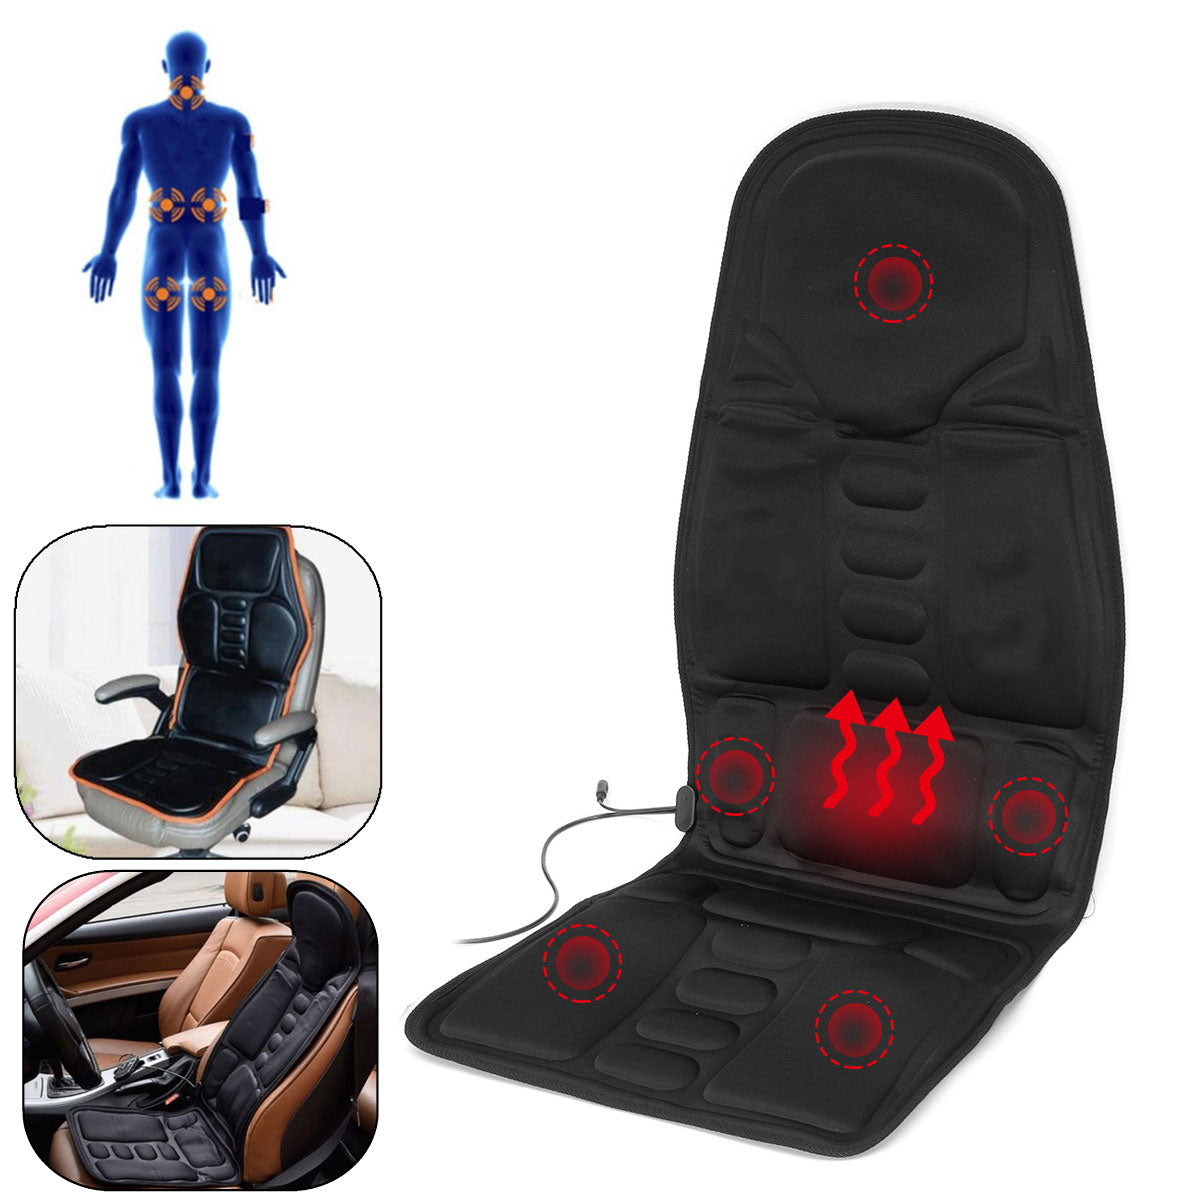 Massage Chair For At Home Car Or Office Body Massager Massage Seat With Heat Option Great For Neck Pain Lumbar Support Legs And Back-Massage Equipment-Fit Sports